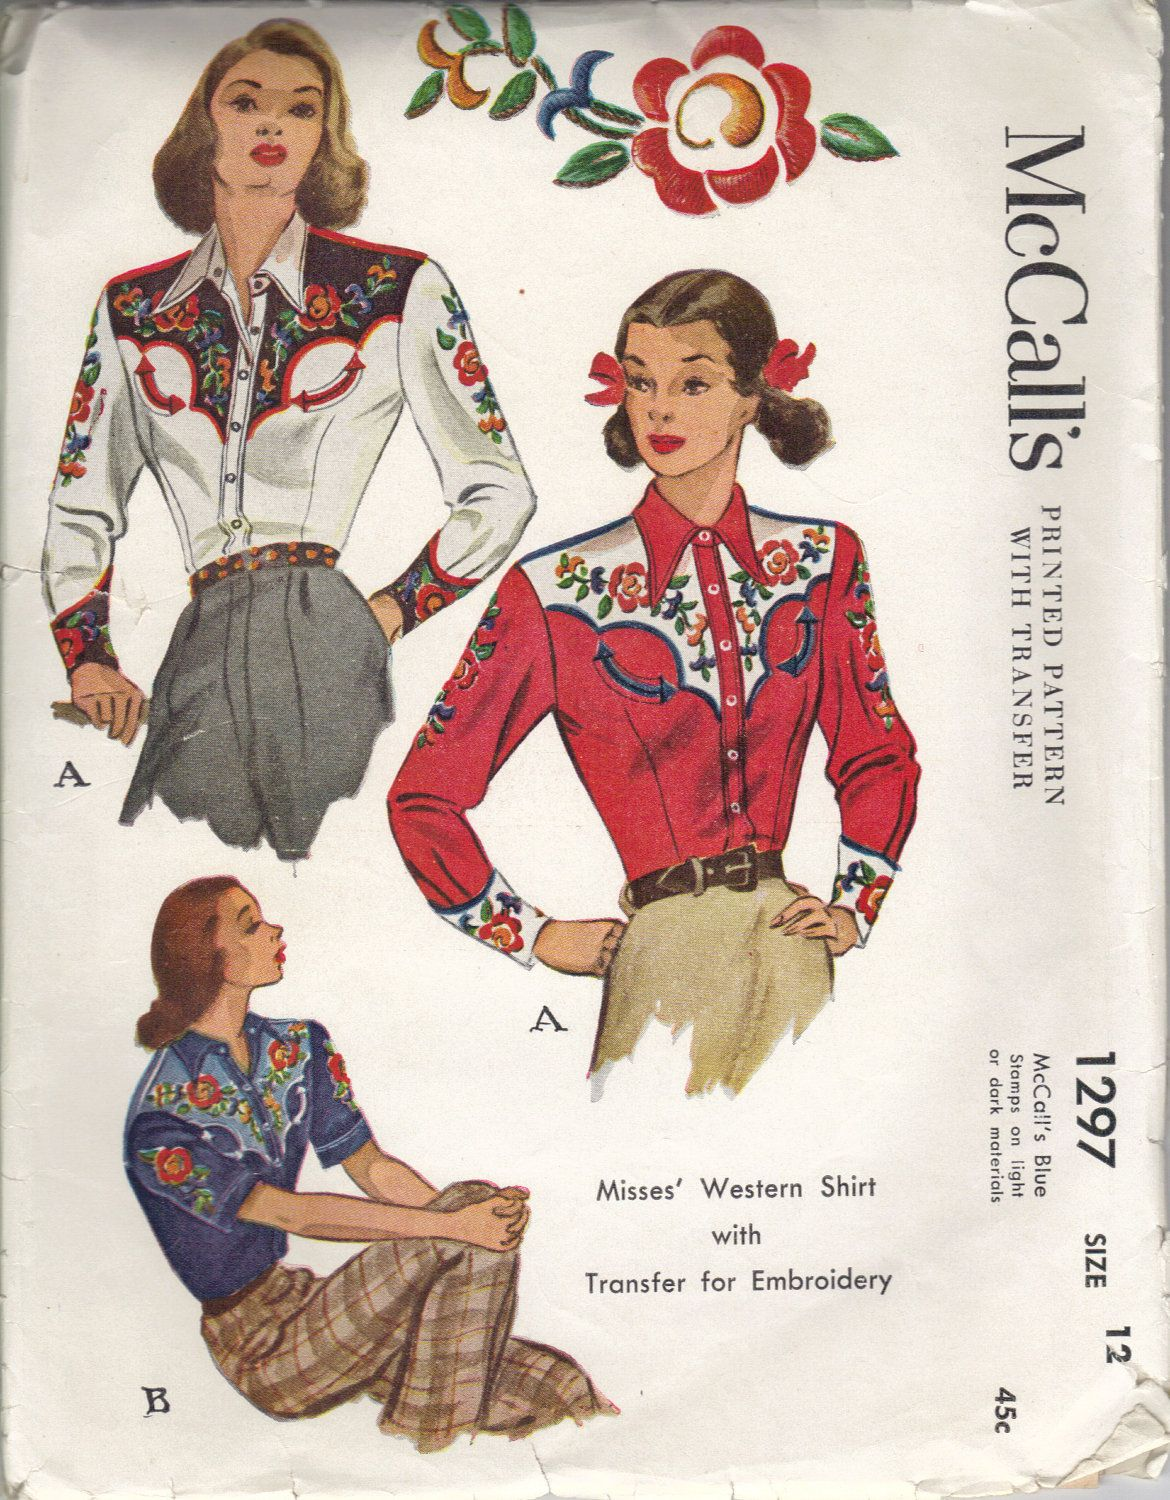 1940s mccalls 1297 pattern for western shirt with embroidery 1940s mccalls 1297 pattern for western shirt with embroidery bankloansurffo Gallery